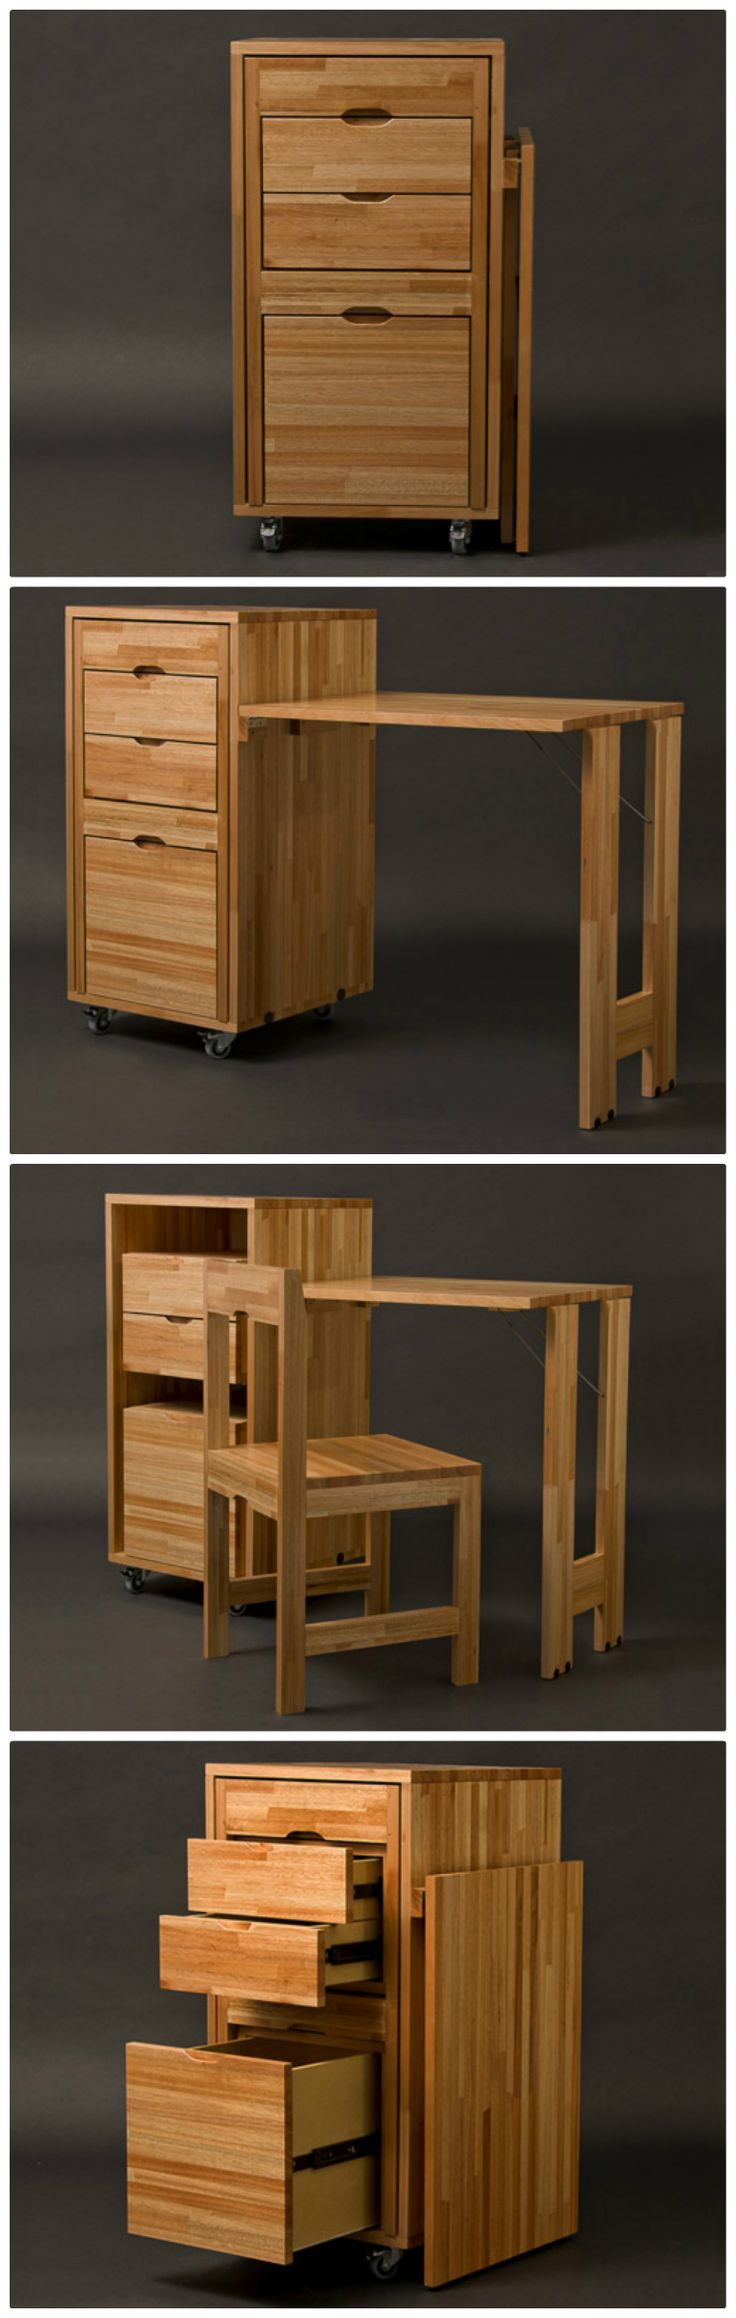 Cabinet with built-in chair and desk